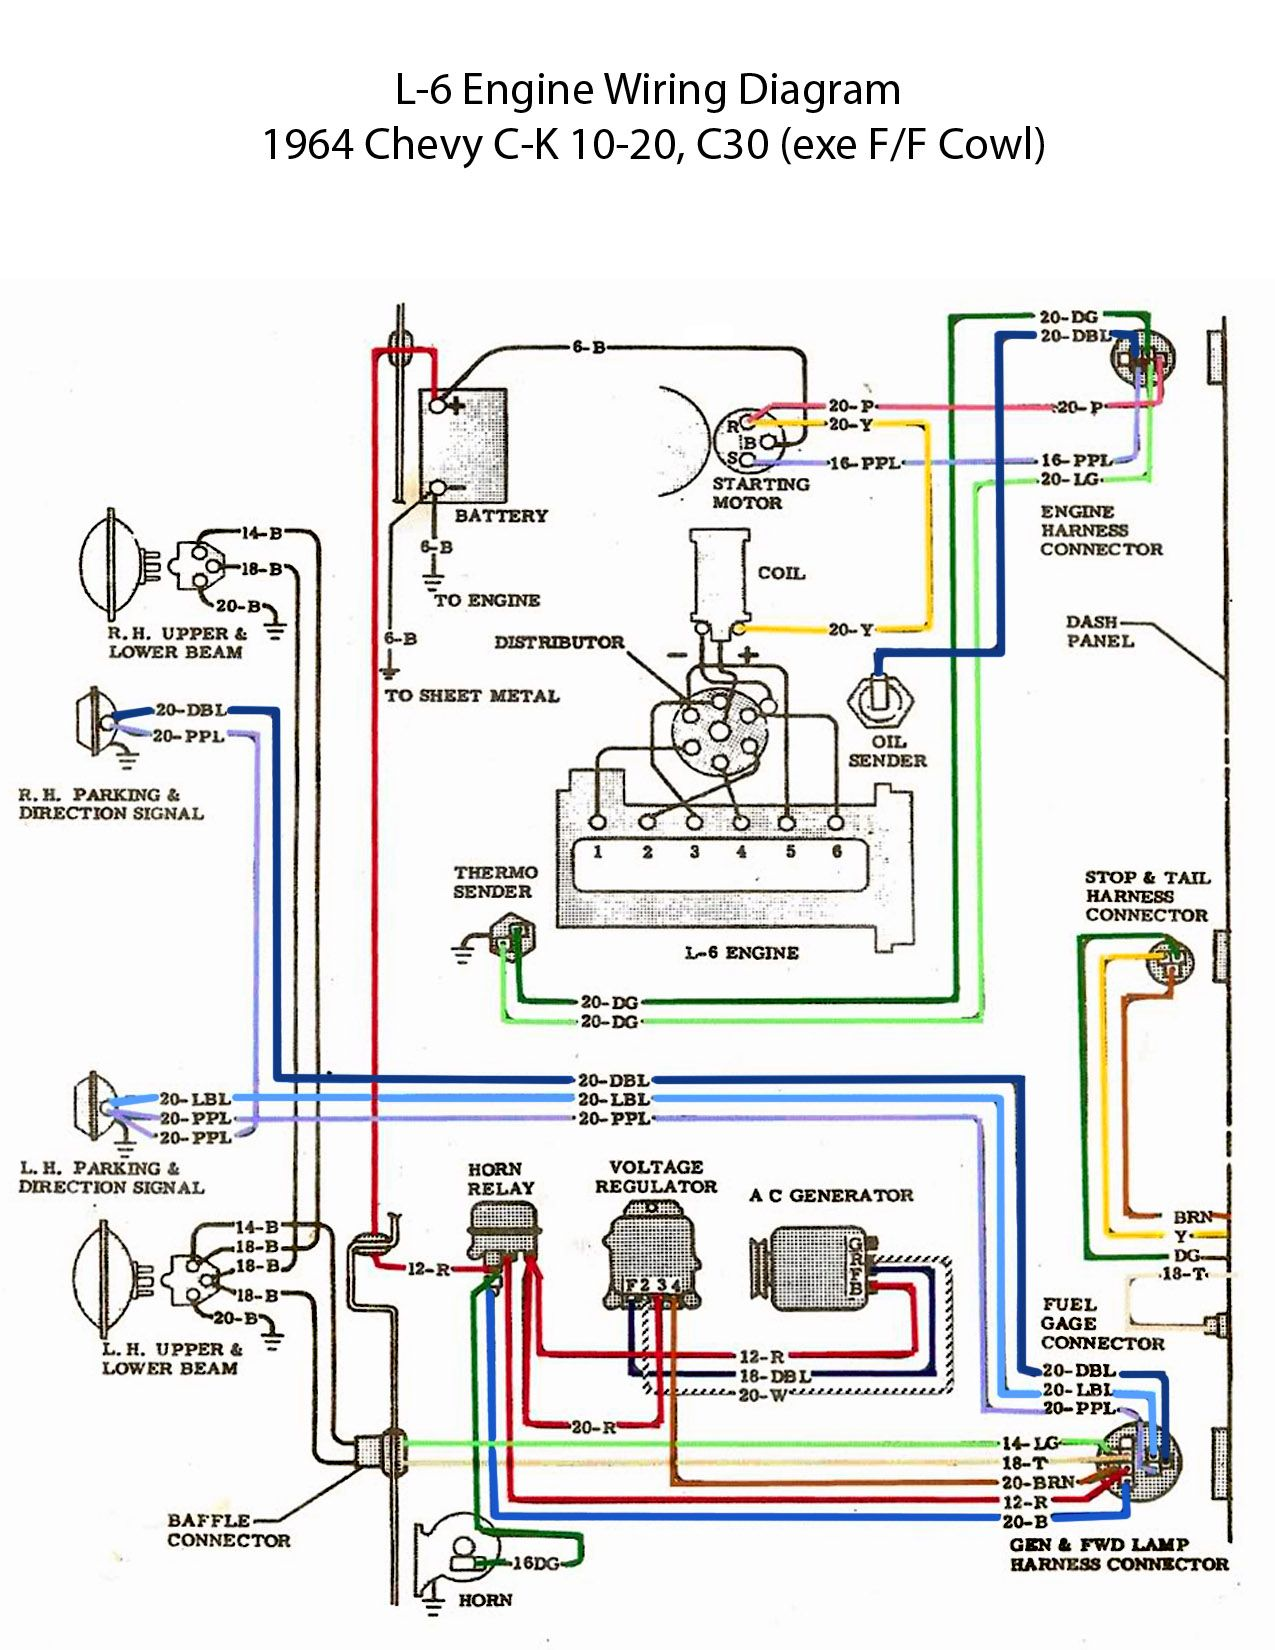 24 Hp Briggs And Stratton Wiring Diagram V Twin Books Of Electric L 6 Engine 60s Chevy C10 Rh Pinterest Com Honda Vanguard